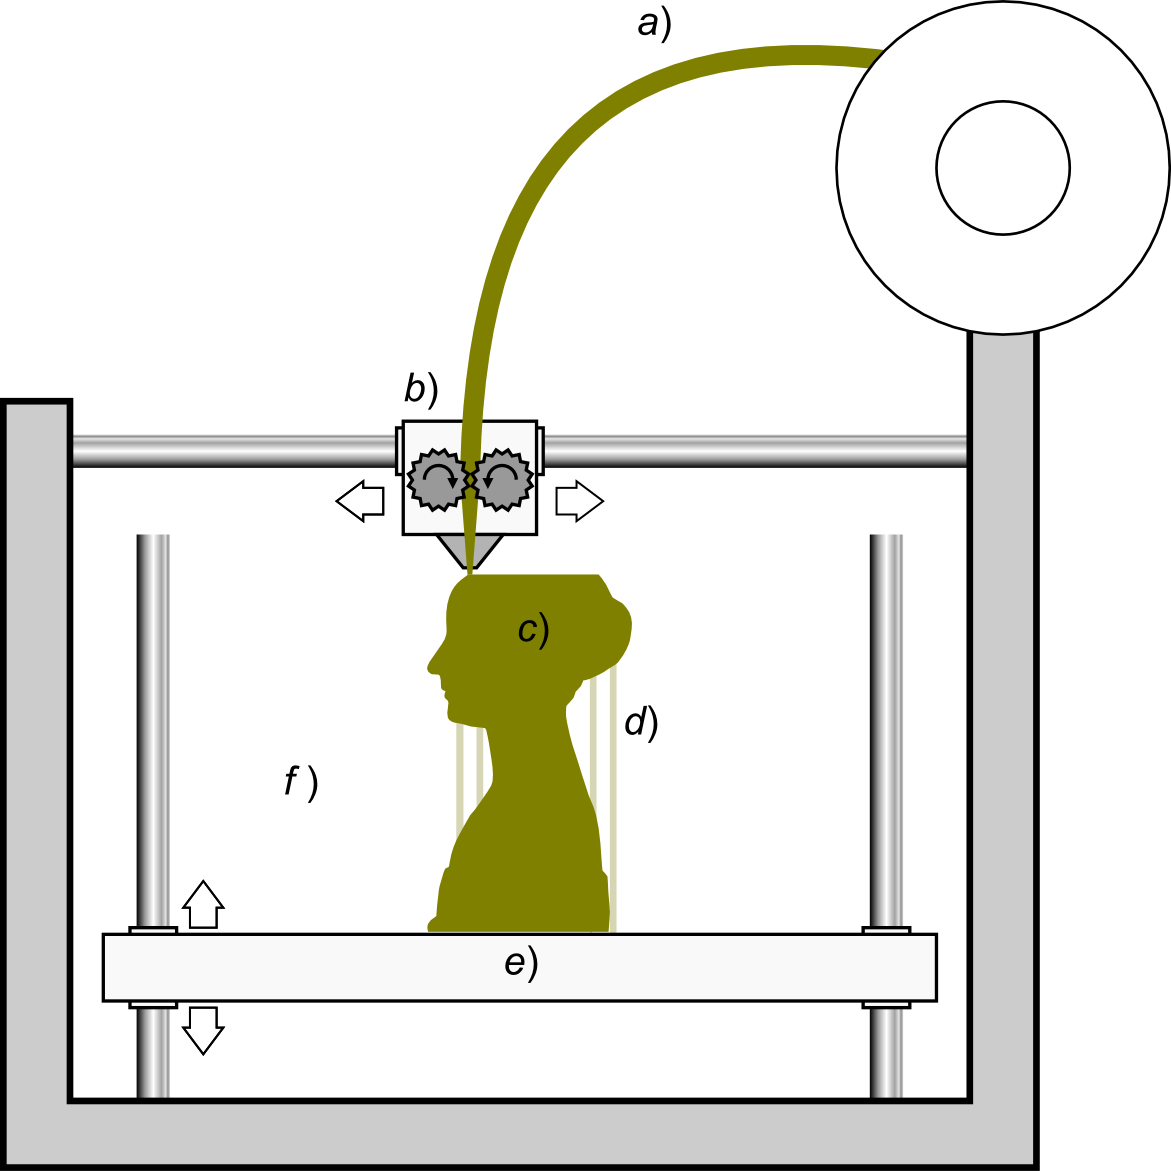 3d Metal Printing >> Fused deposition modeling - Wikipedia